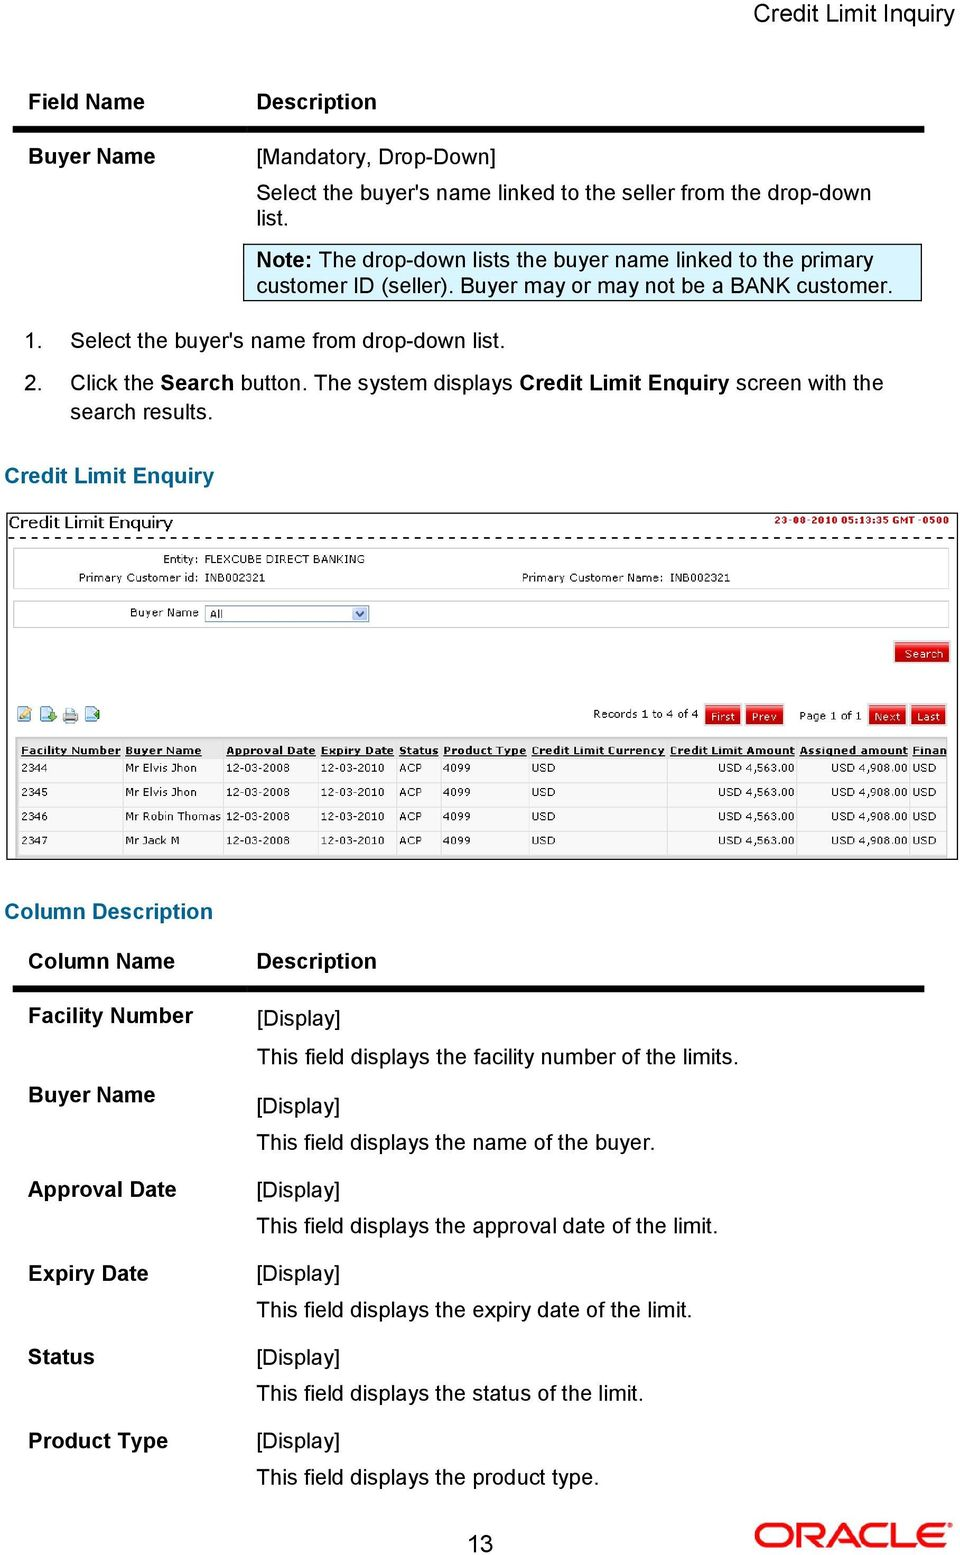 Click the Search button. The system displays Credit Limit Enquiry screen with the search results.